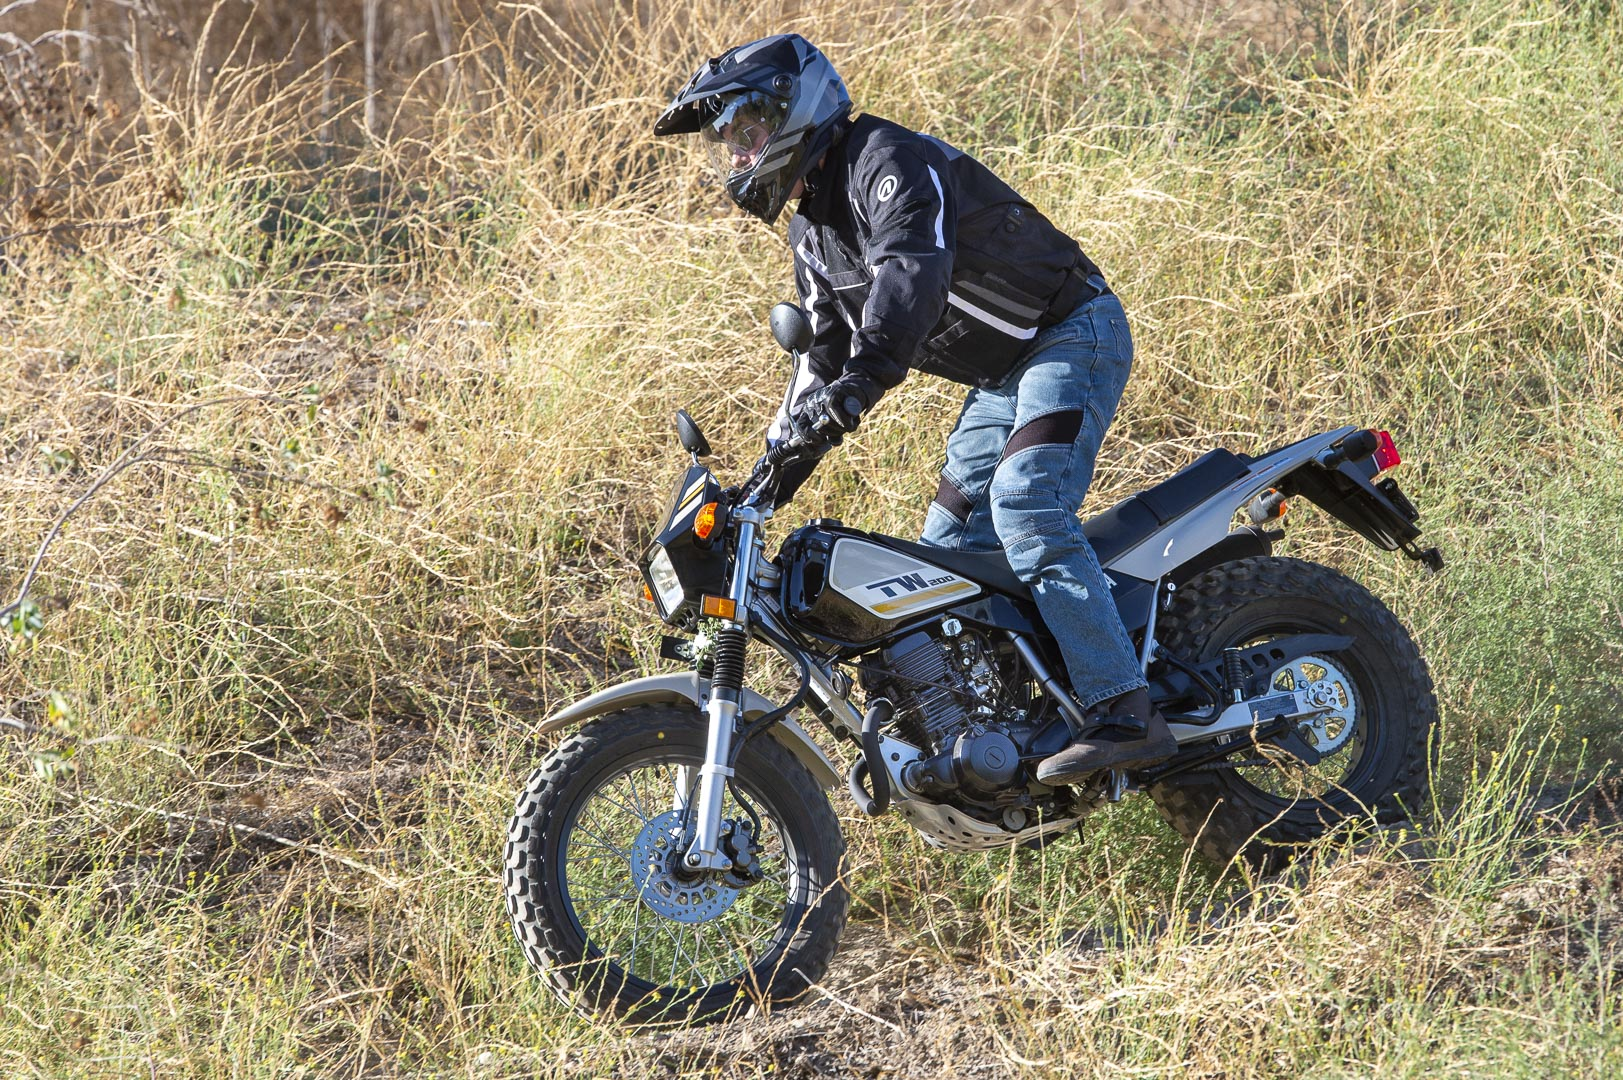 2020 Yamaha TW200 Review - MSRP